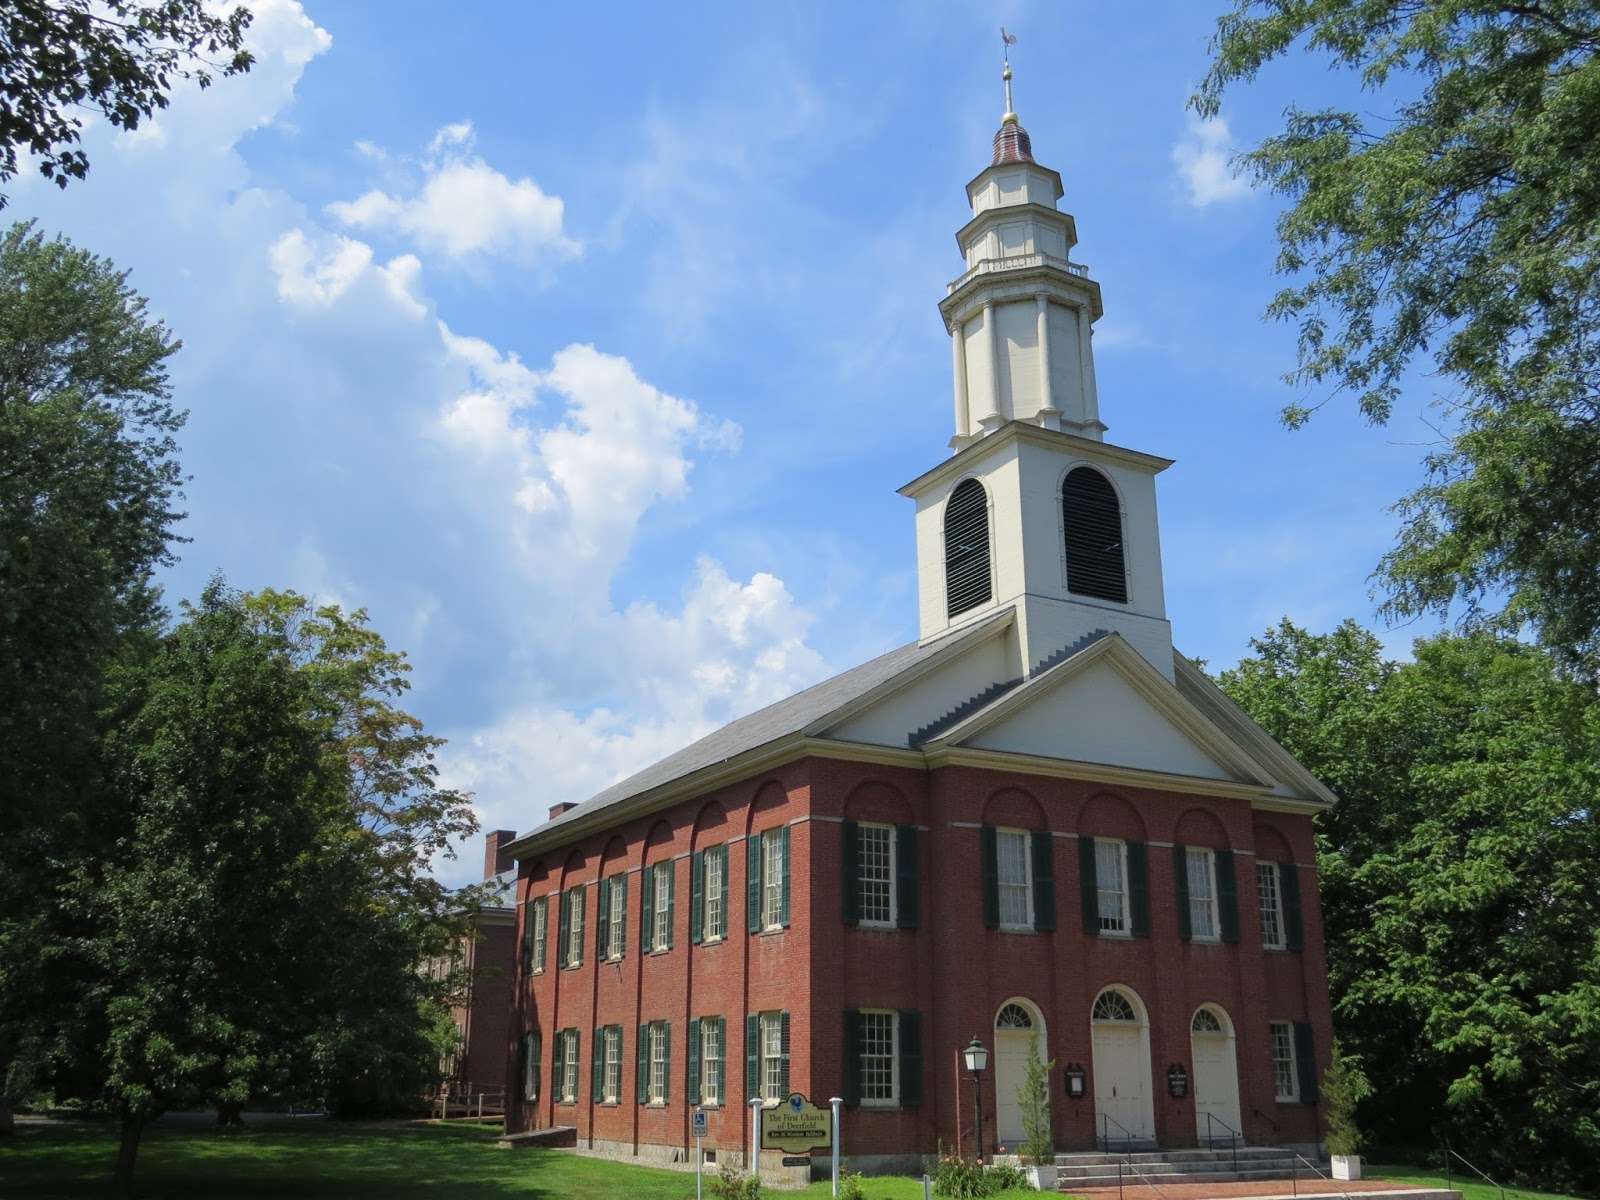 Things with Wings: A Visit to Historic Deerfield